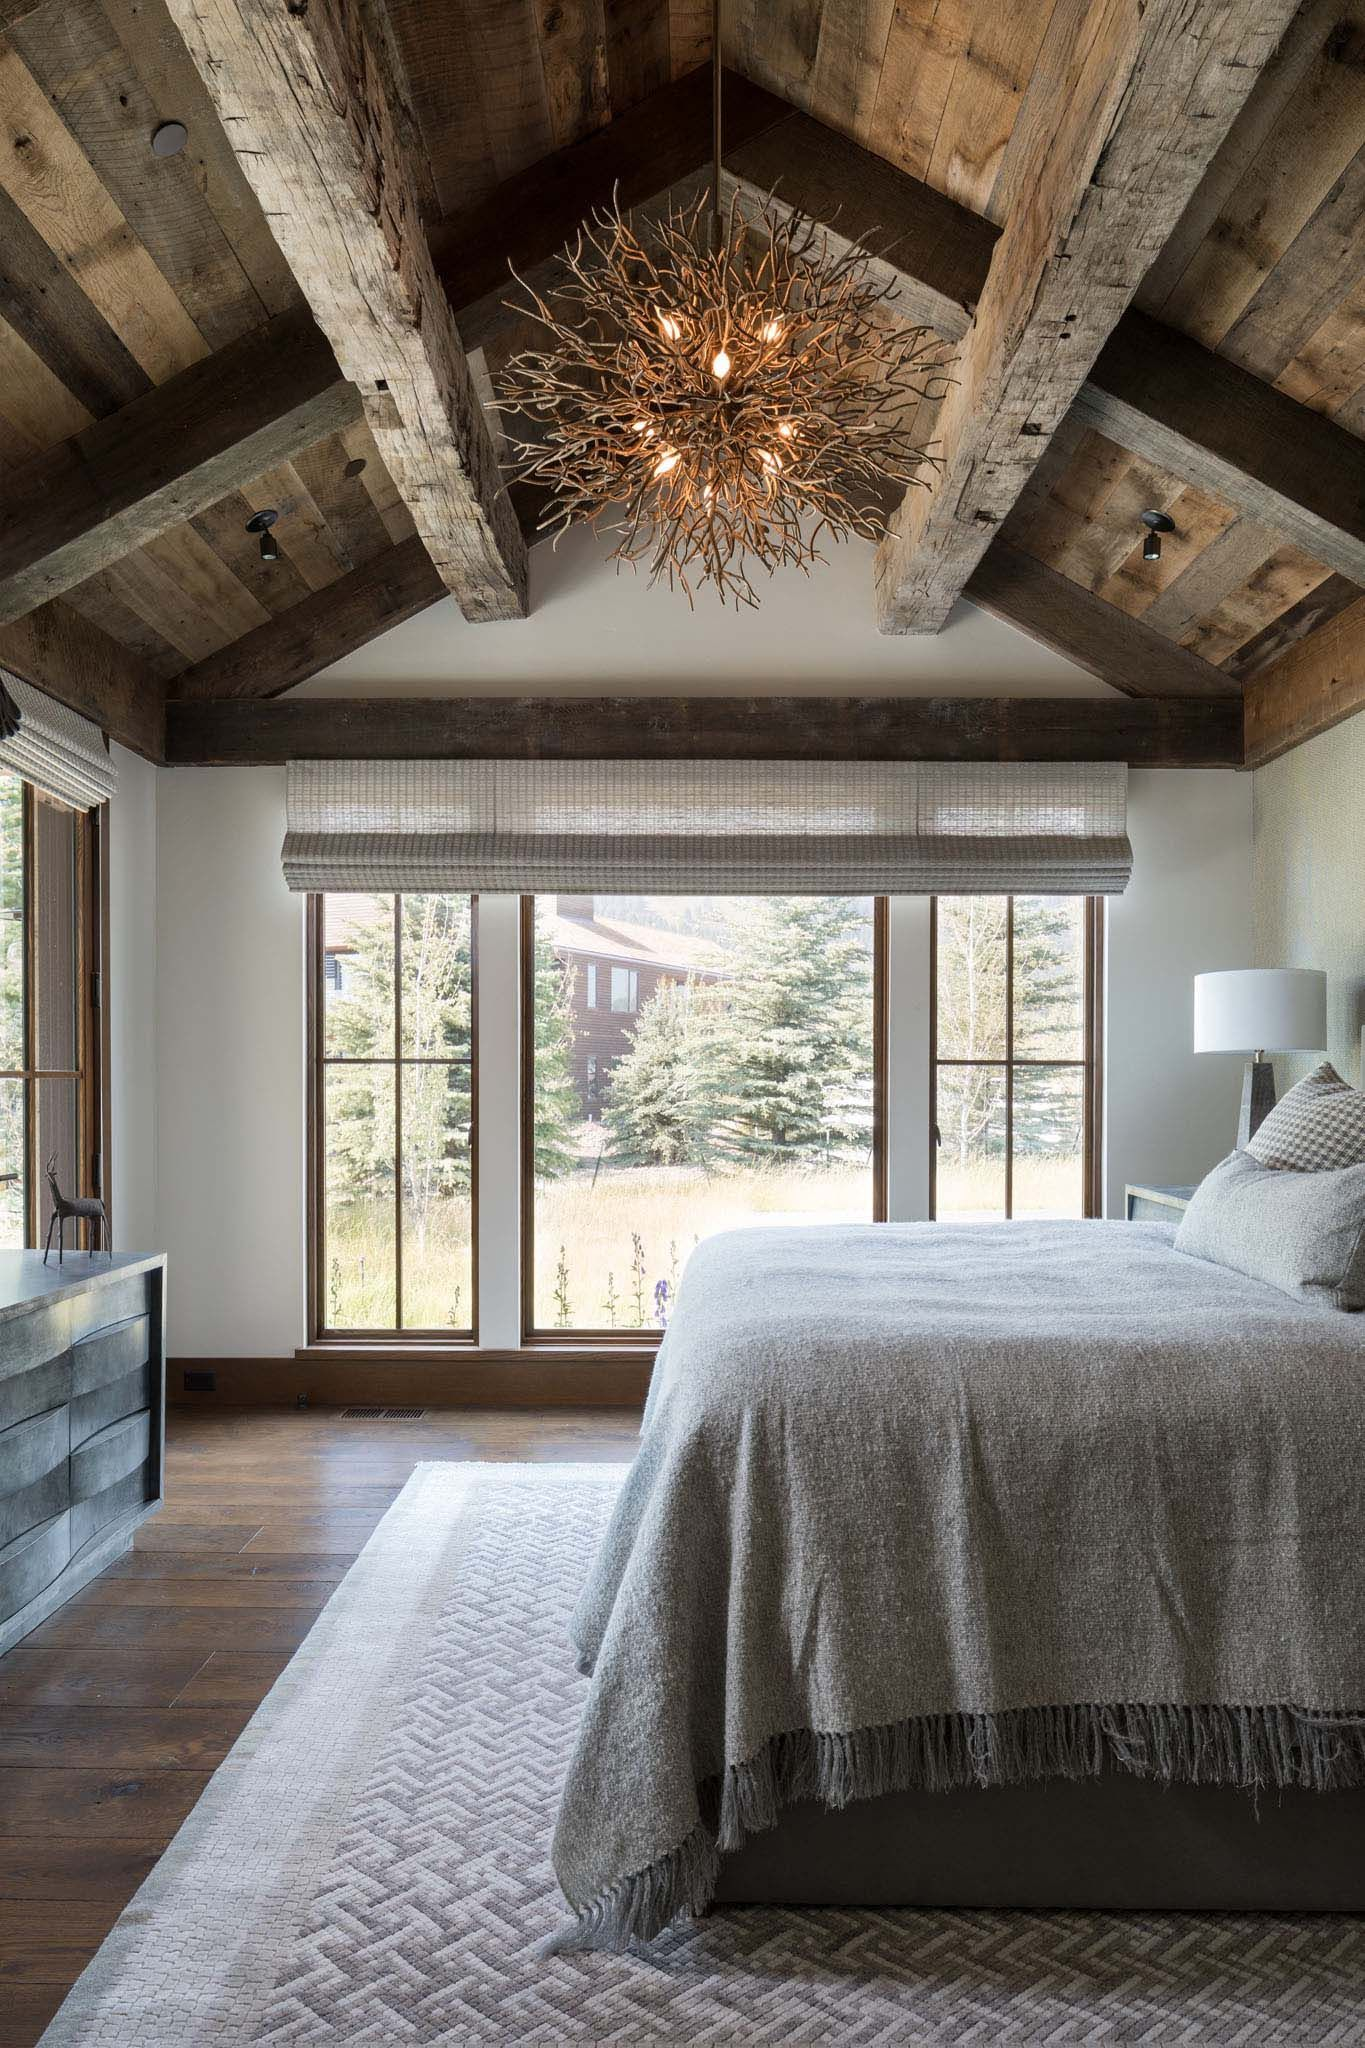 Beautiful Bedroom Ceiling Decor Concepts Whether You Have Wood Beams And Also Have No Suggesti Rustic Home Design Living Room Decor Rustic Rustic Living Room